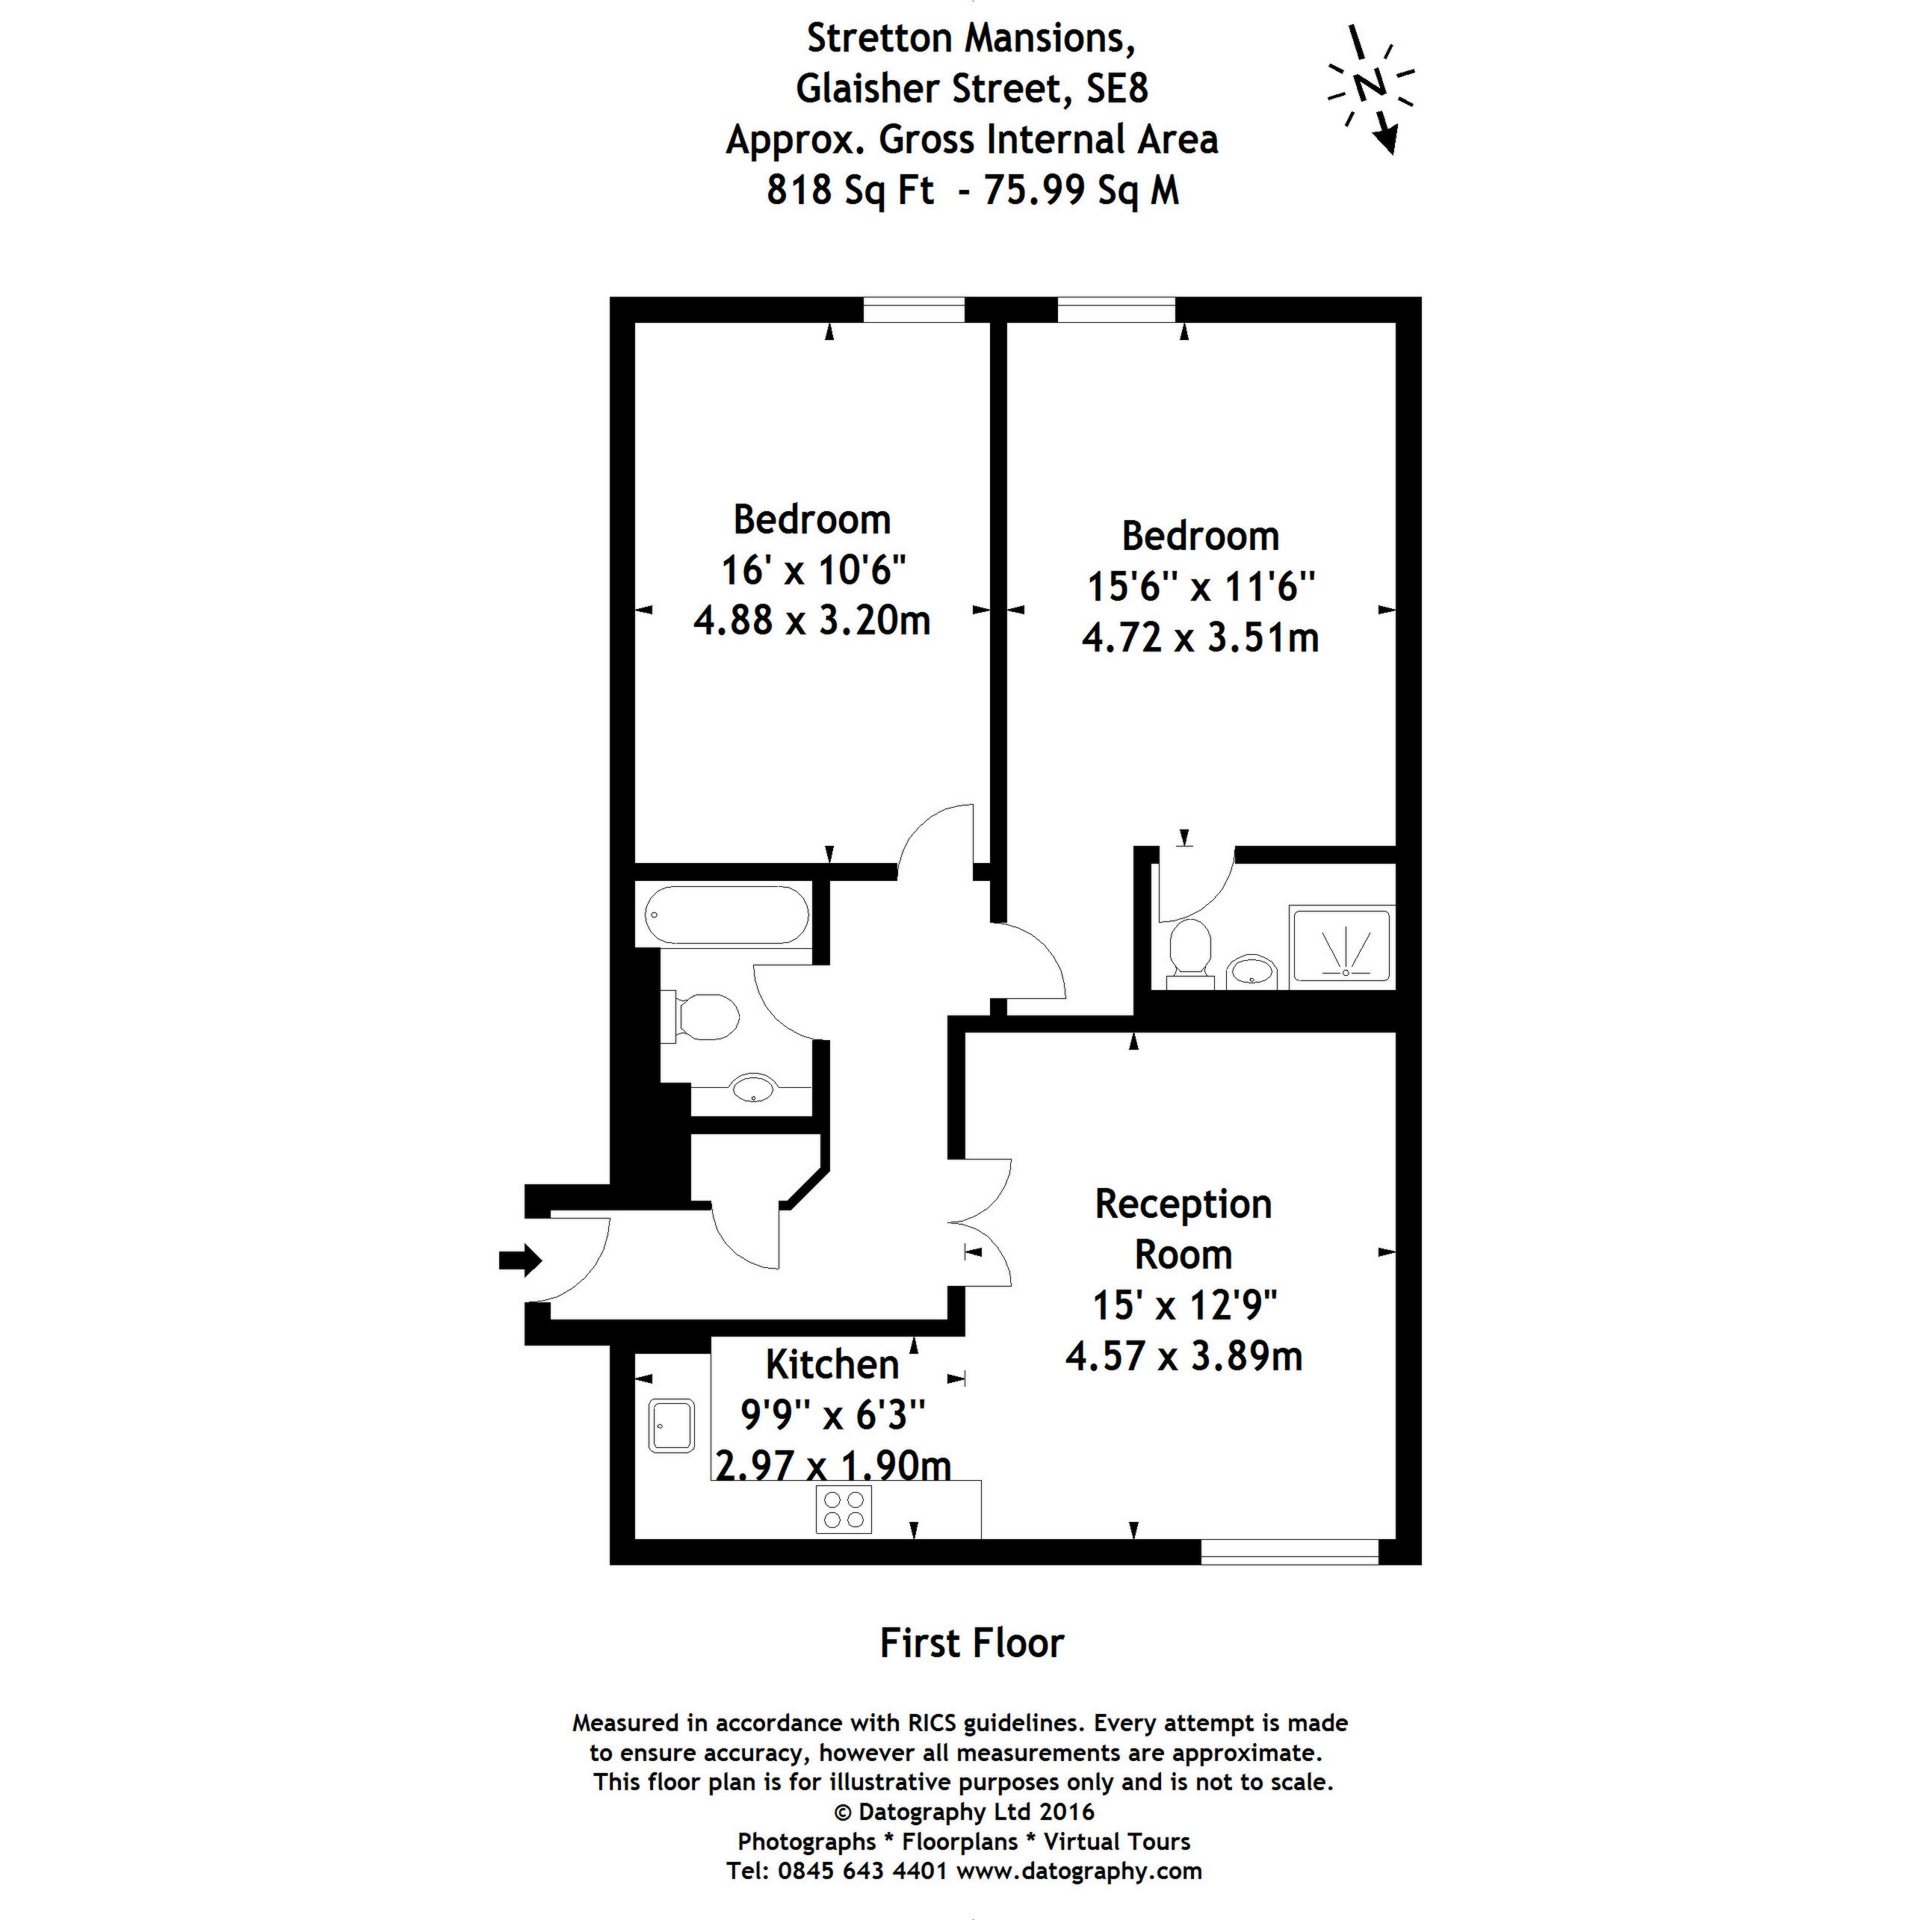 Stretton Mansions, Glaisher Street,  London, SE8 floor plan